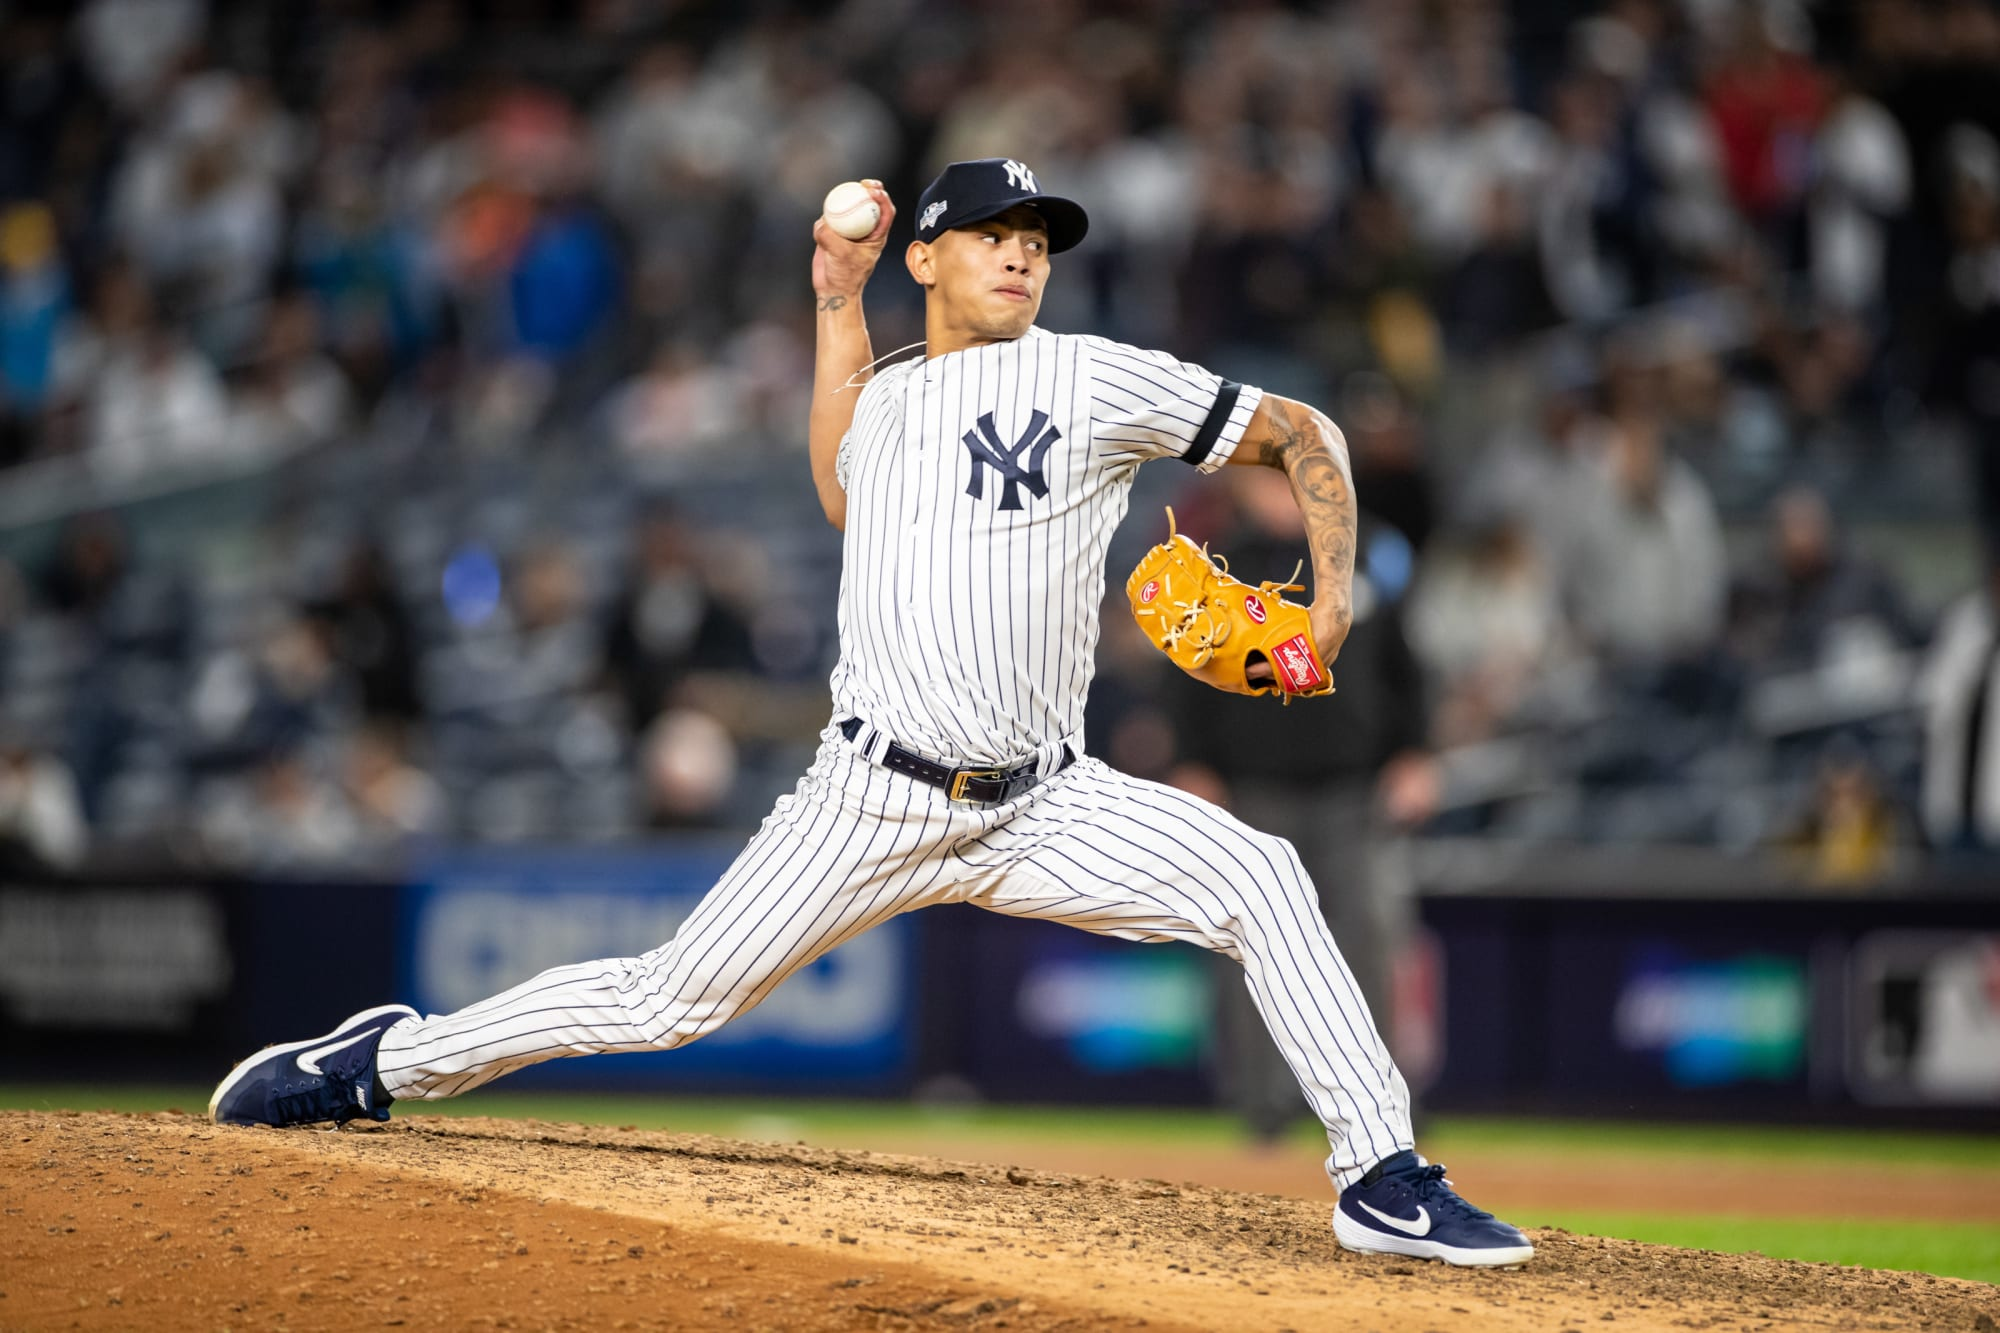 Jonathan Loaisiga will have an important role early in the Yankees' season